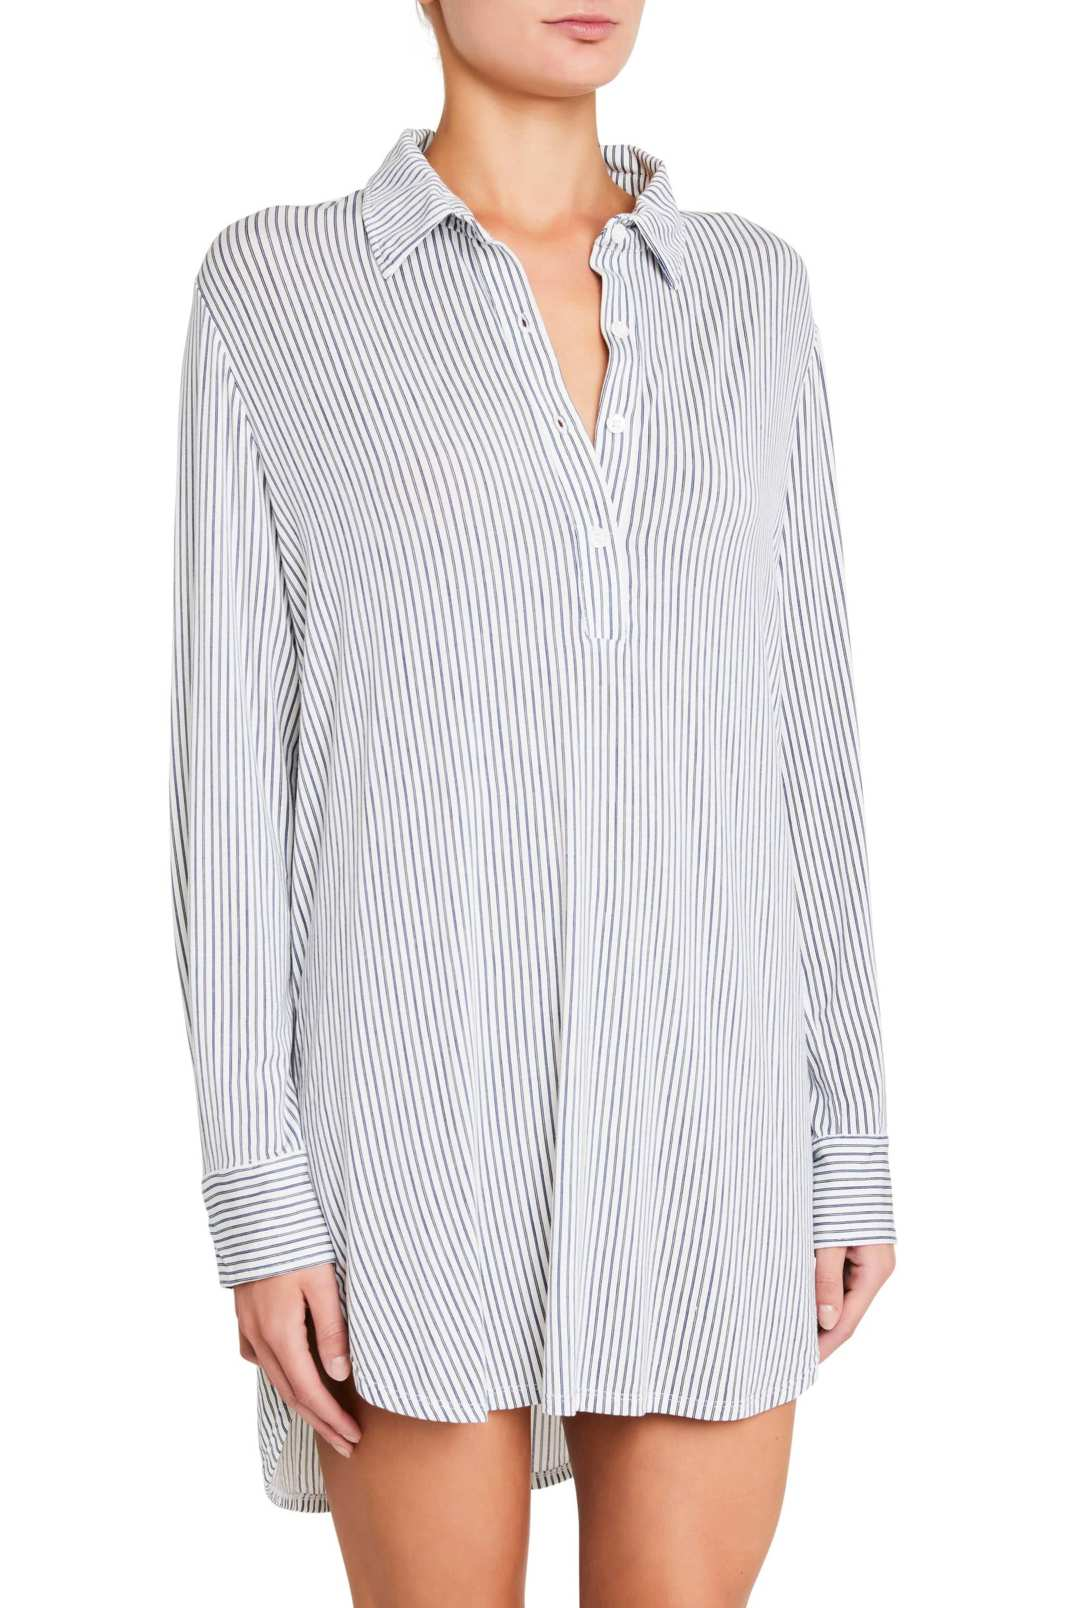 Eberjey Nordic Stripe Boyfriend Sleep Shirt